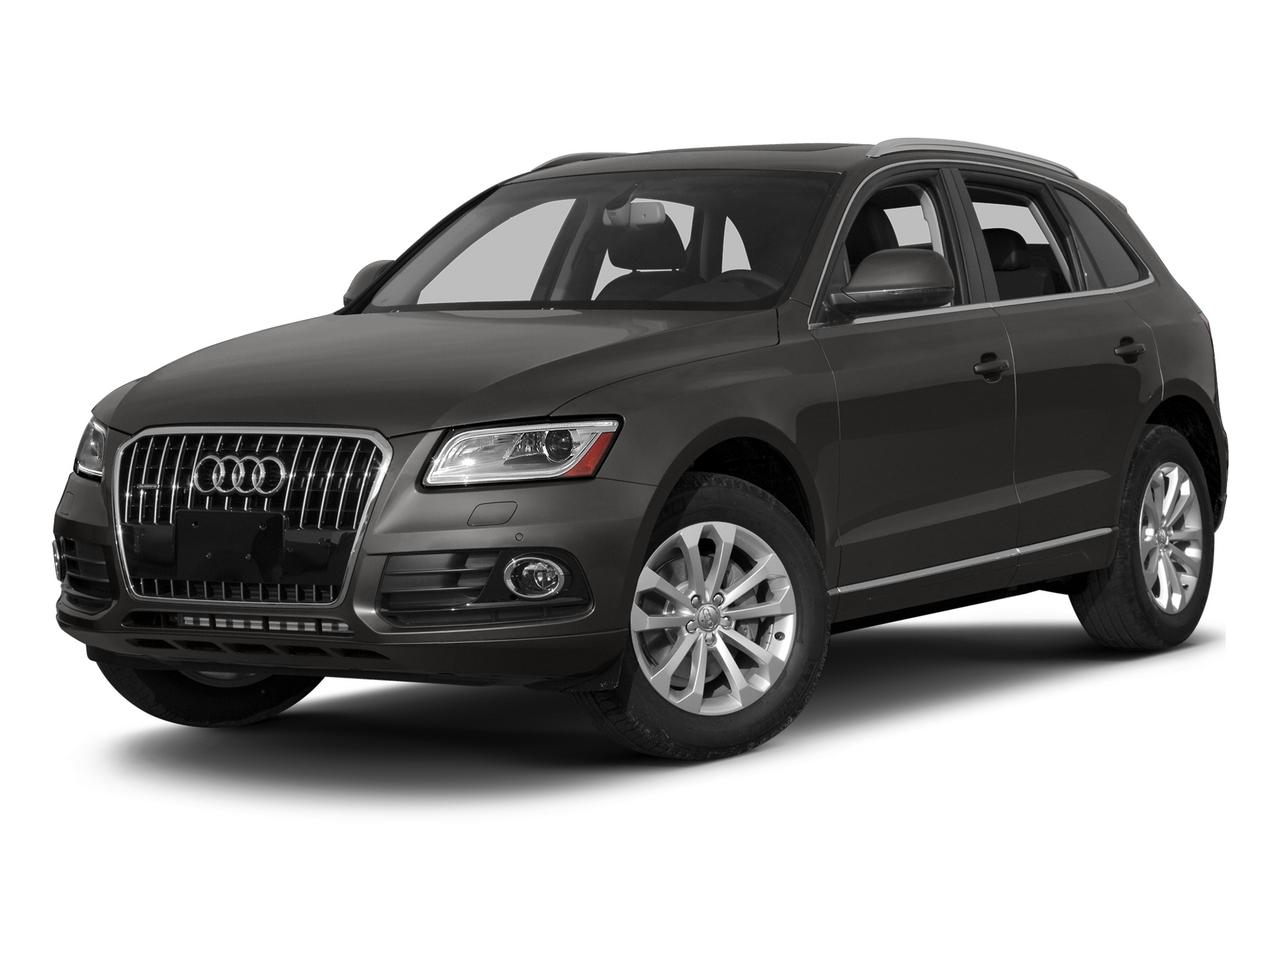 2015 Audi Q5 Vehicle Photo in Allentown, PA 18103